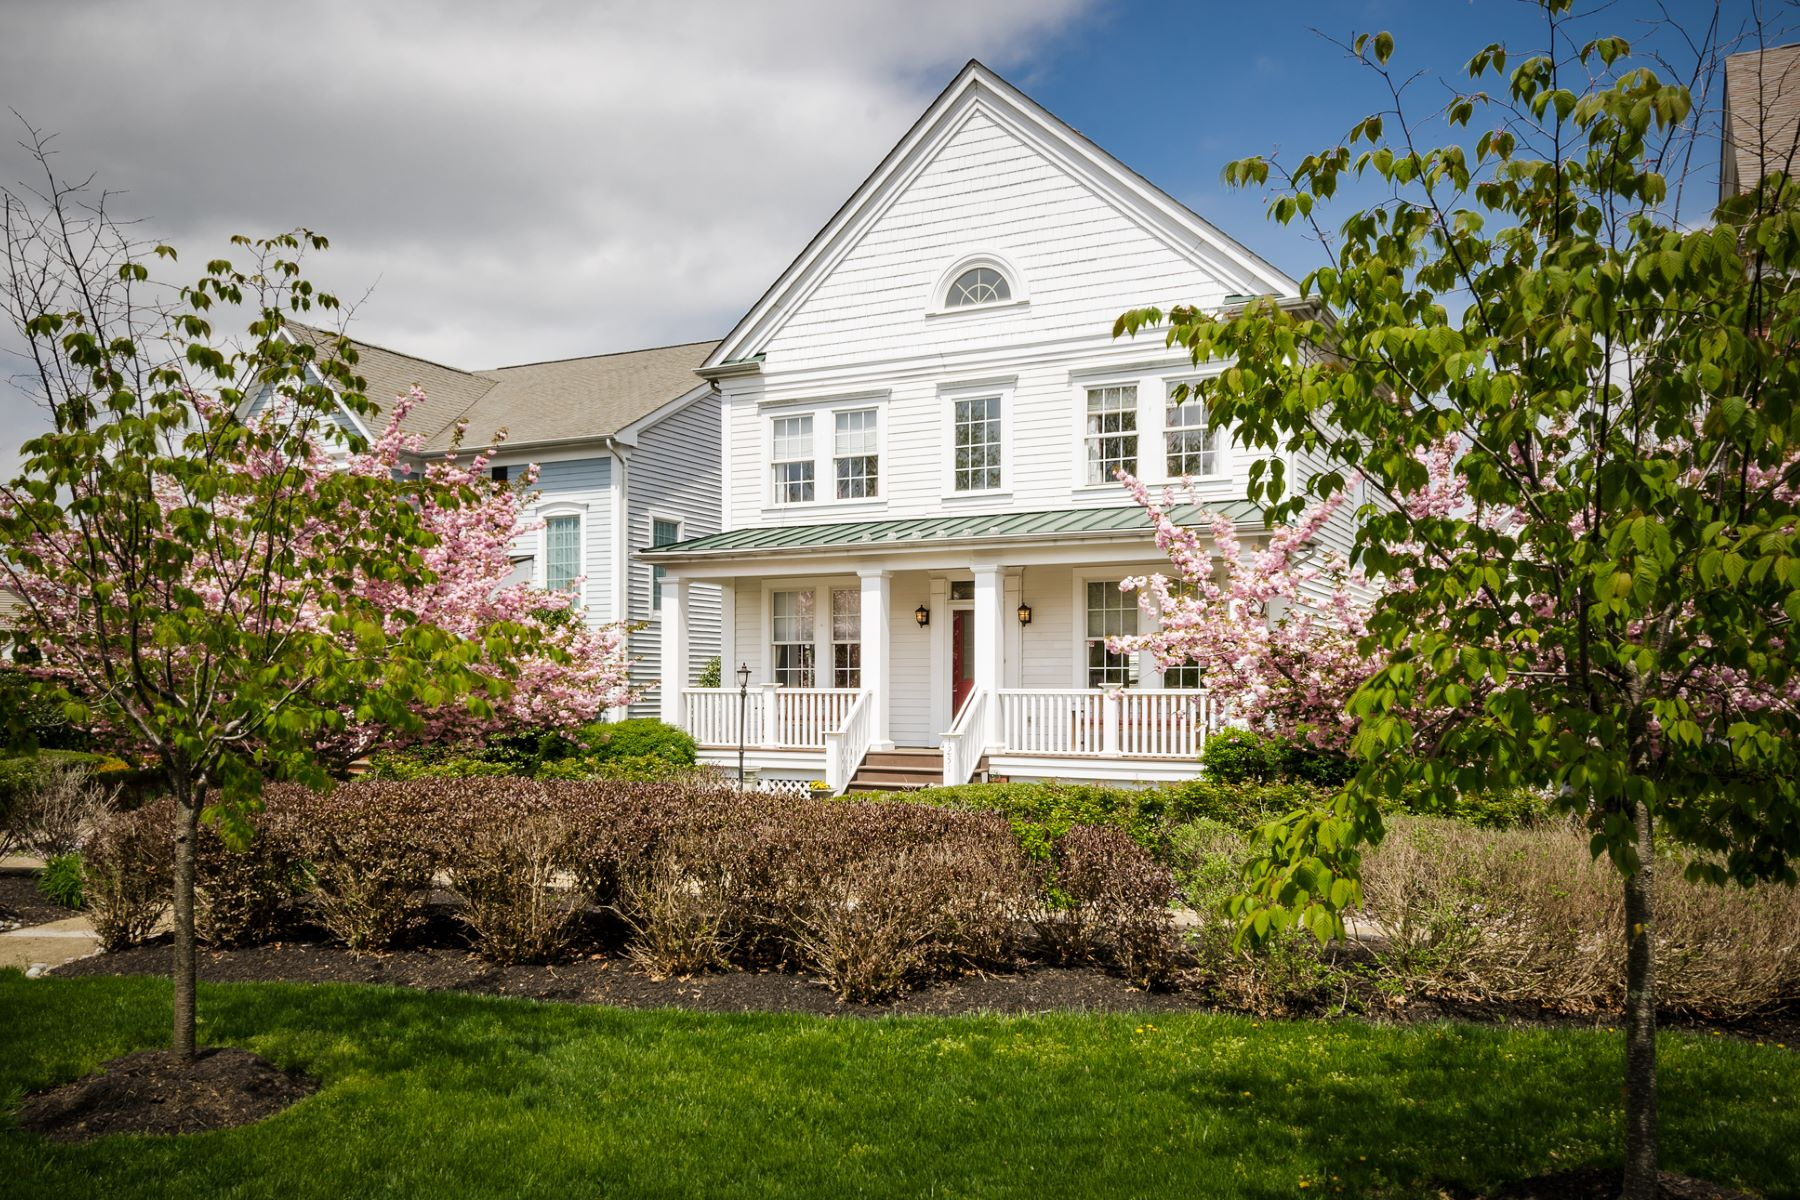 Single Family Home for Sale at Carriage VI Model in Washington Town Center 1251 Park Street Robbinsville, New Jersey 08691 United States